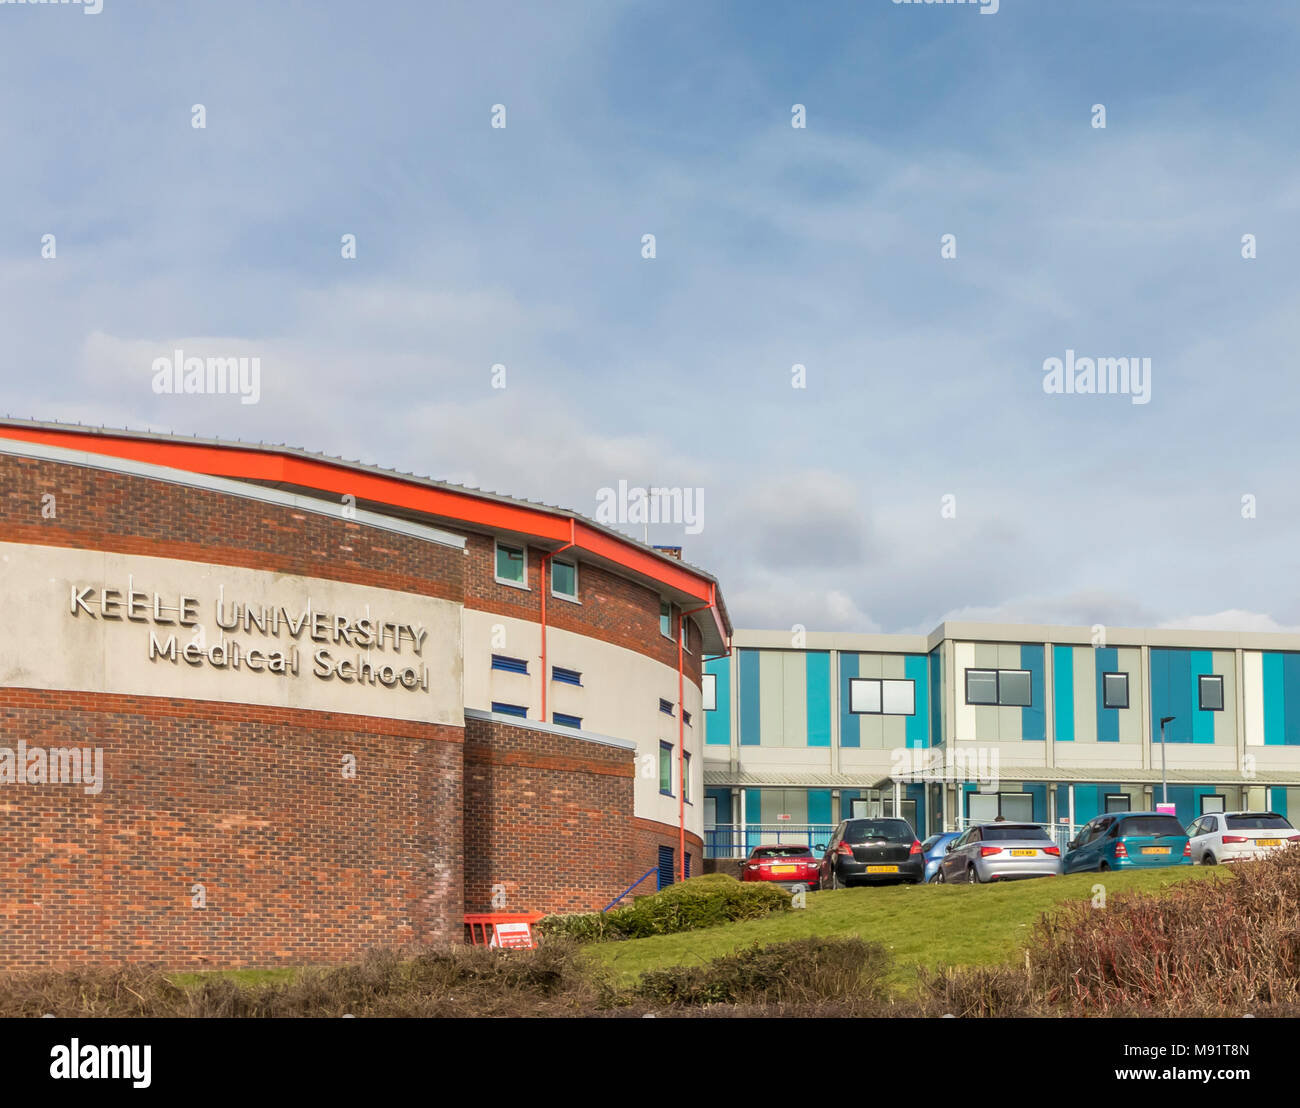 The Keele University Medical School Building attached to and on the site of the NHS Royal Stoke University Hospital in Staffordshire - Stock Image